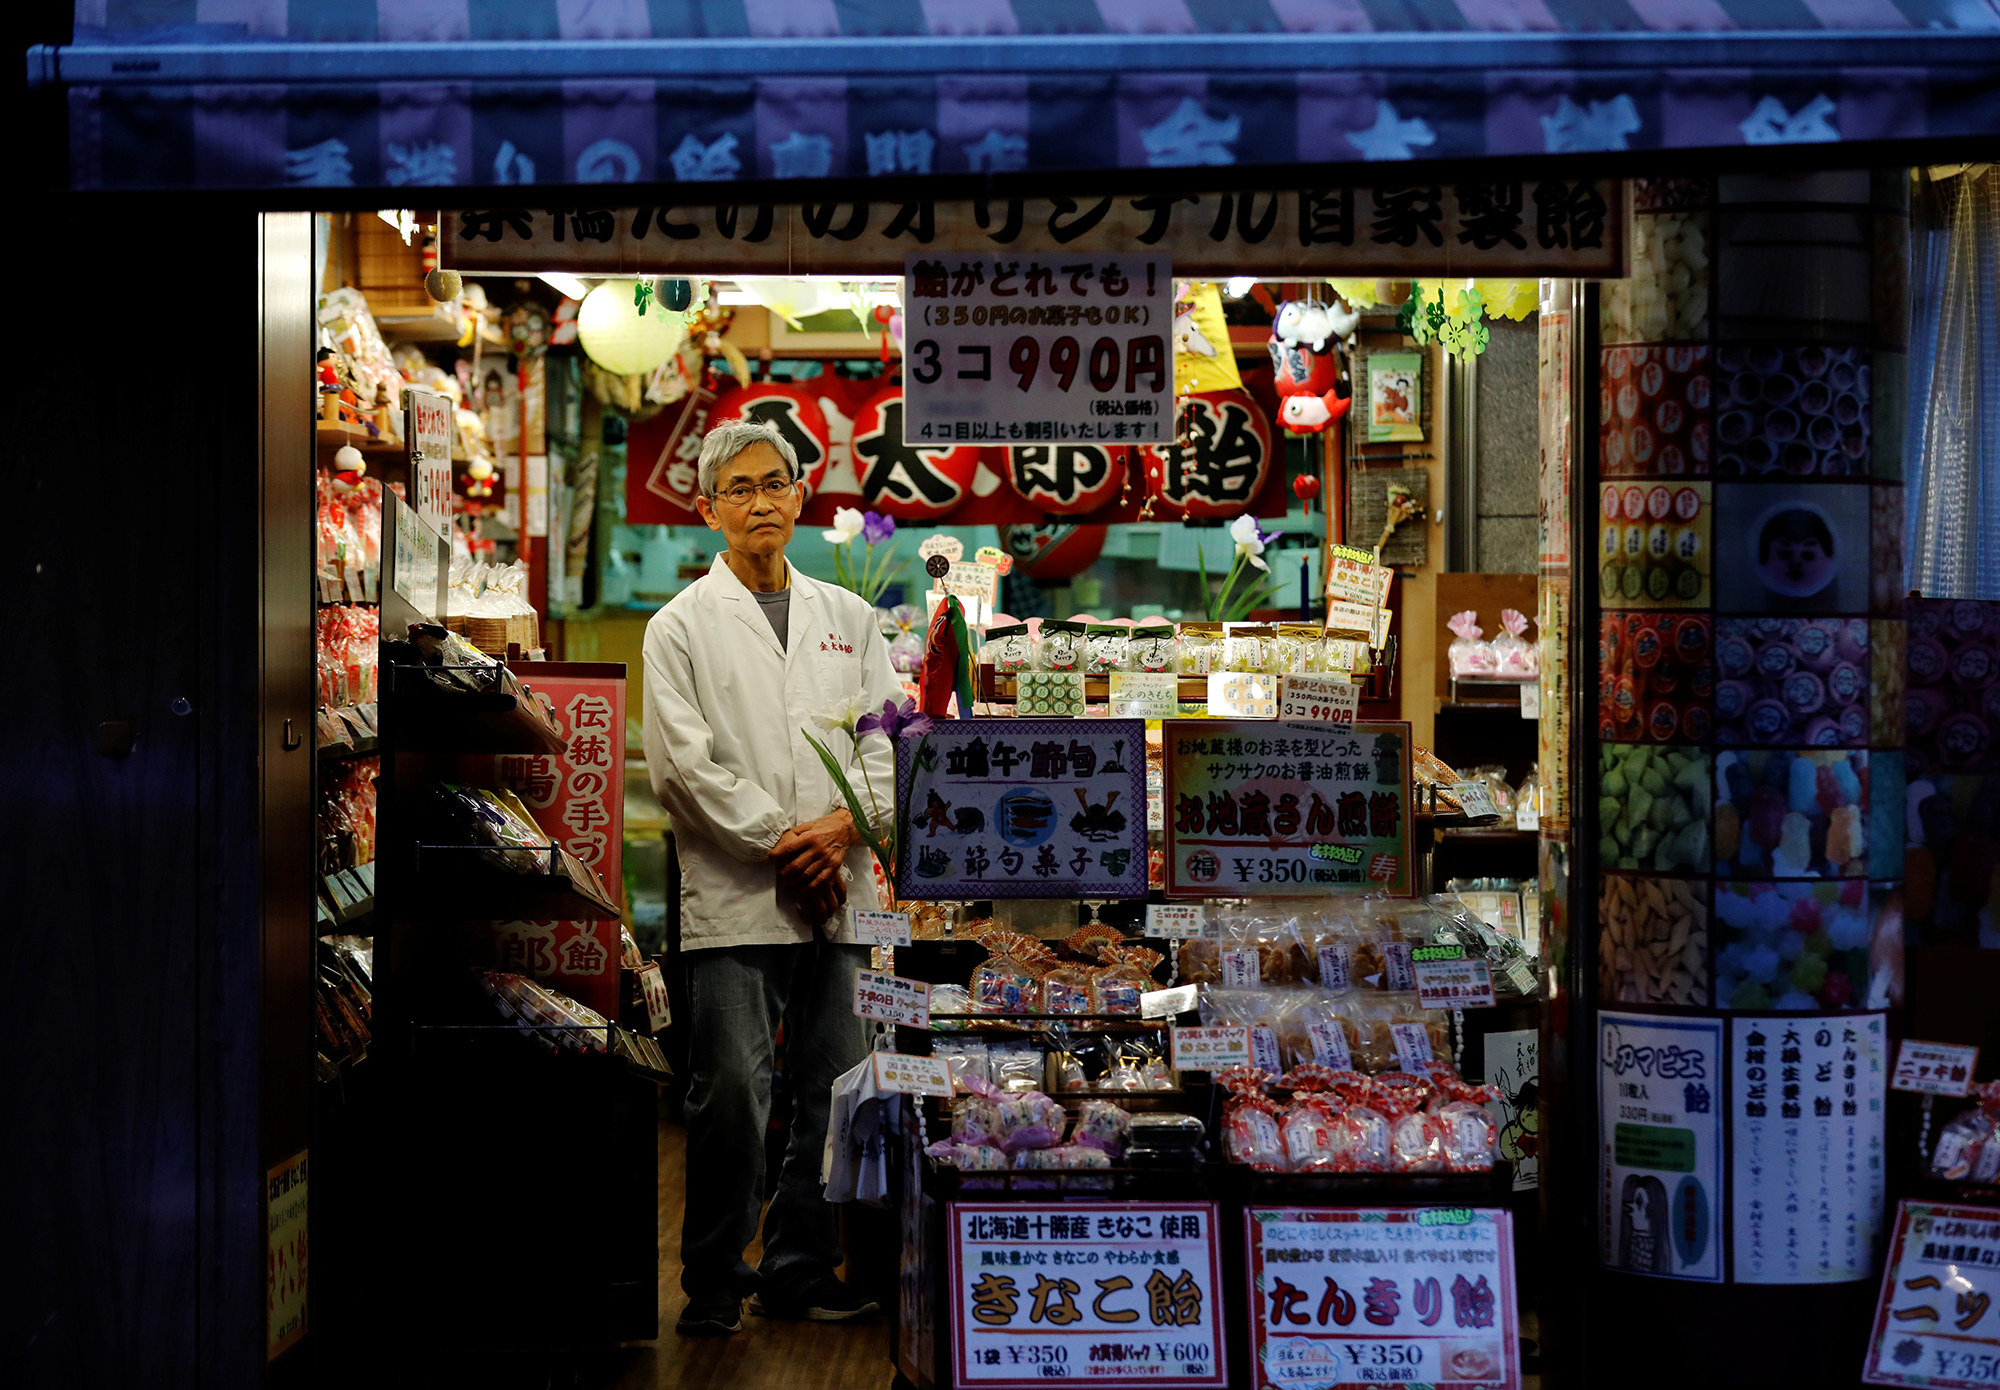 A man stands in front of a store as he holds his hands together